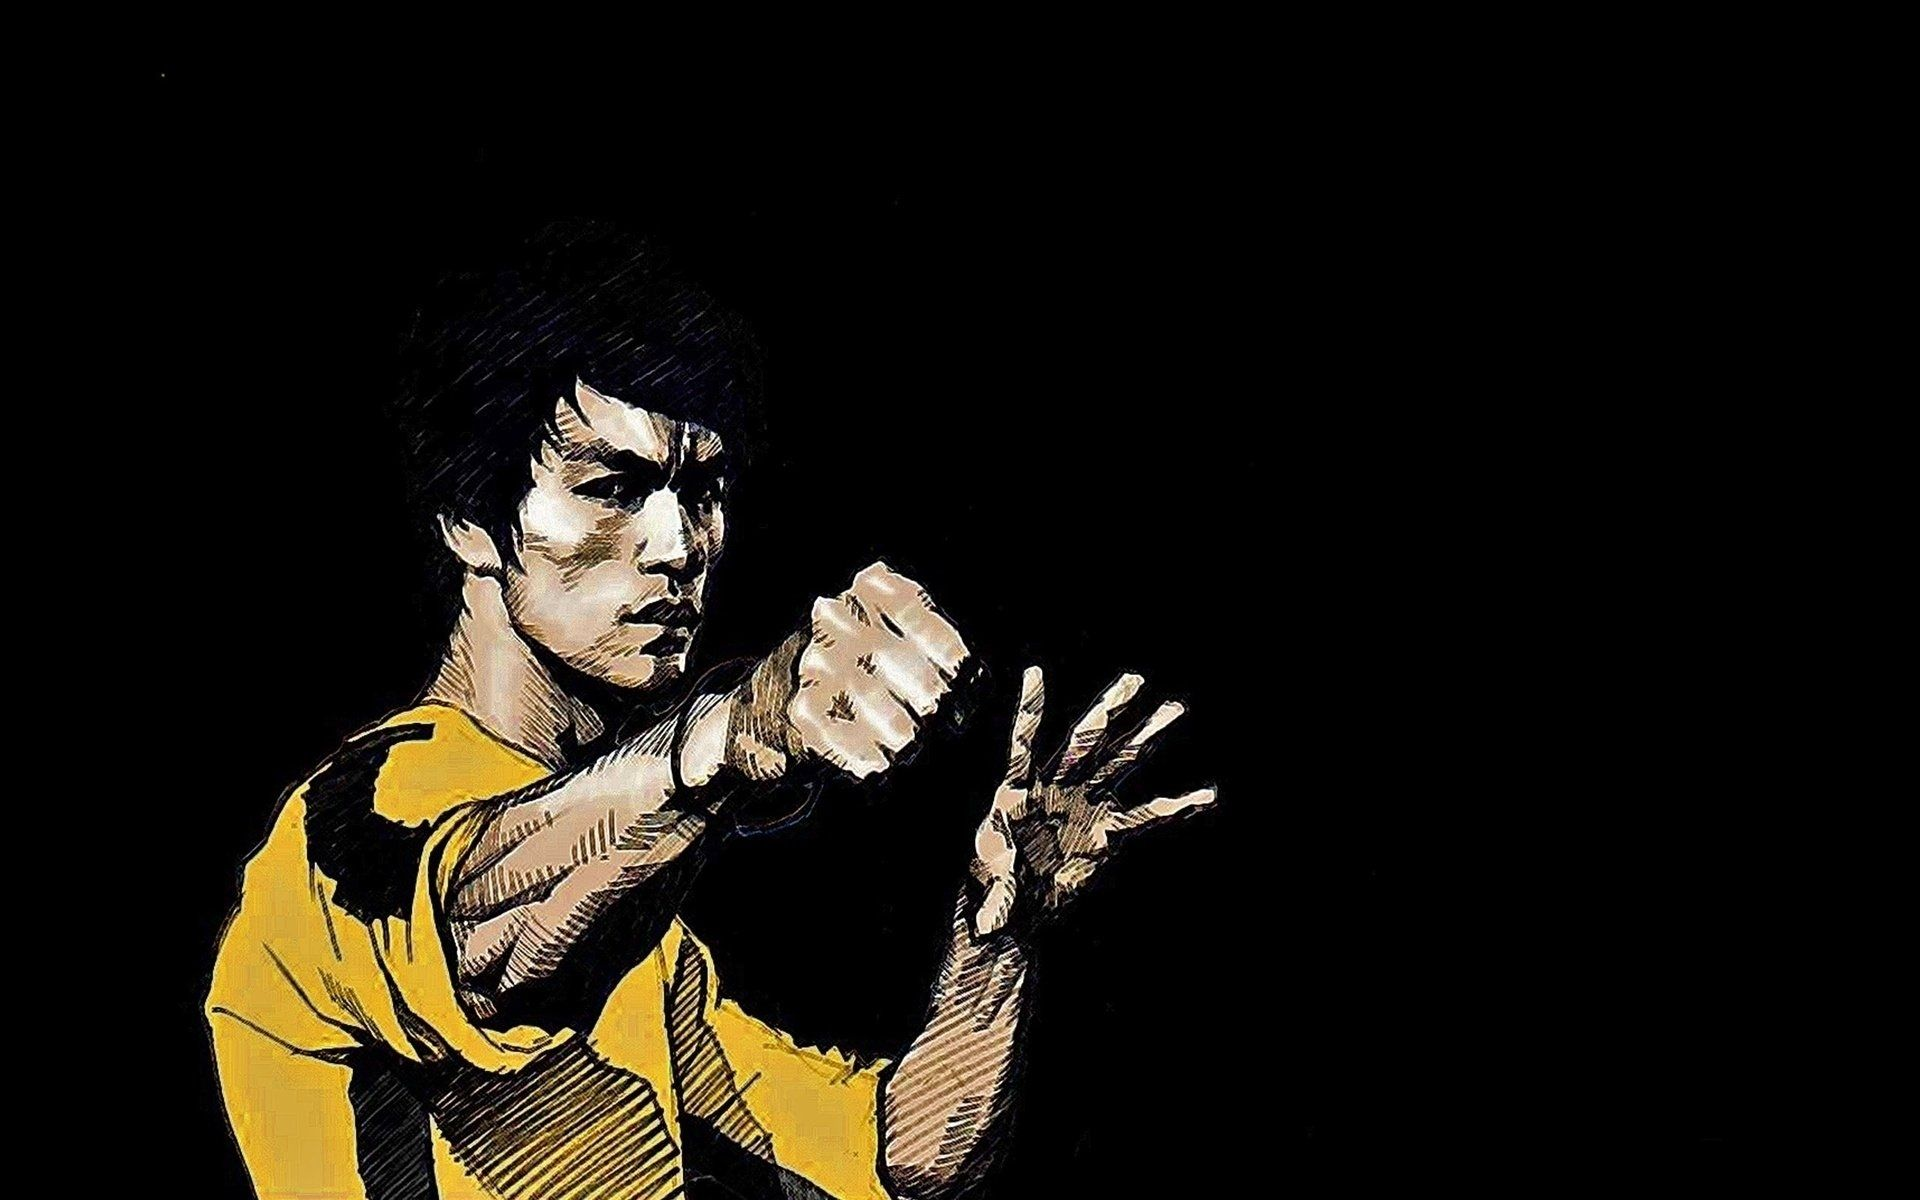 10 Best Bruce Lee Wallpaper 1920X1080 FULL HD 1080p For PC Background | Wallpaper for PC in 2019 ...